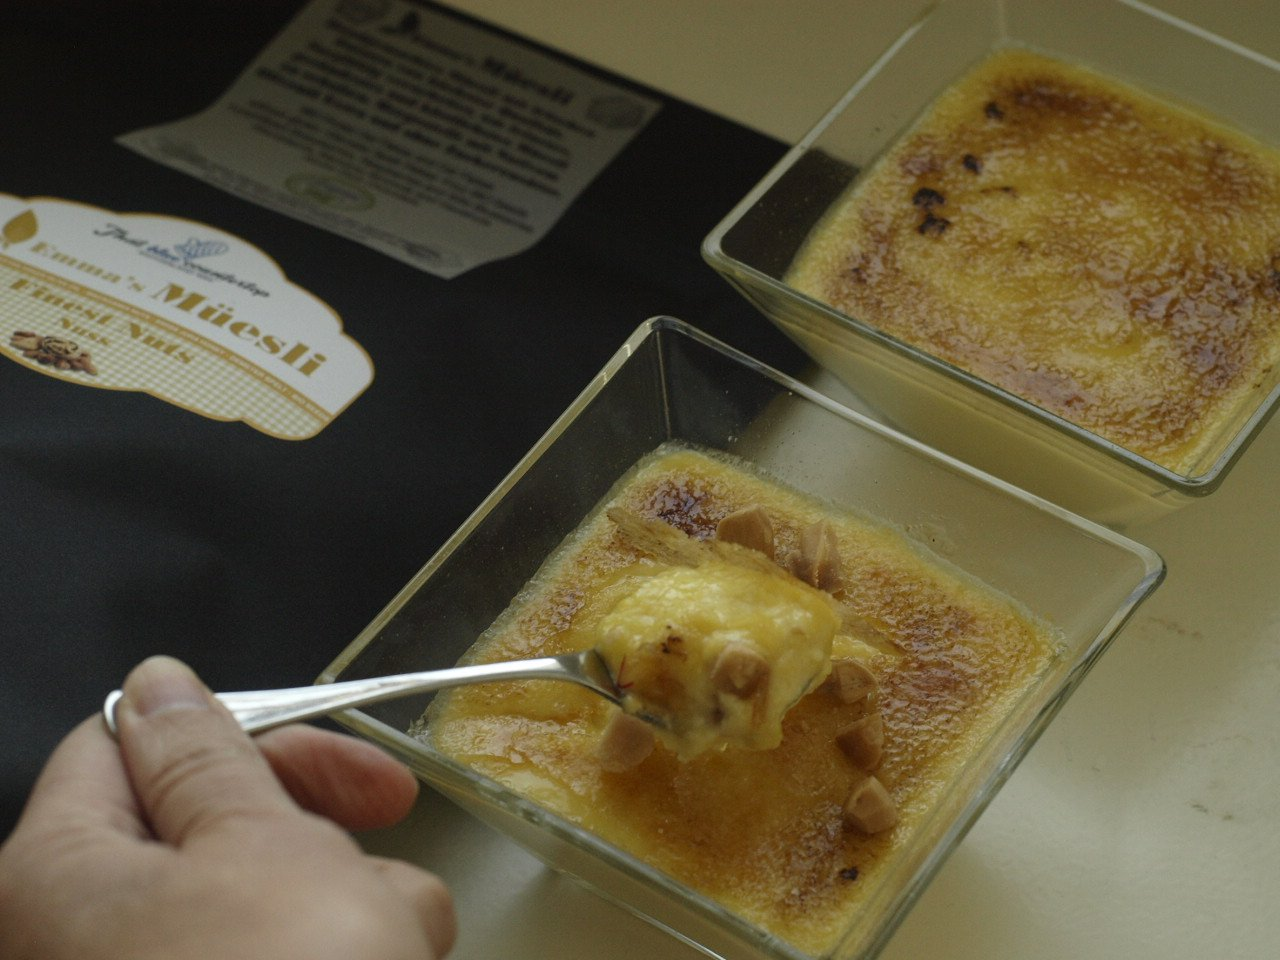 Sous Vide Creme Brulee with Camomile and Macadamia Nuts